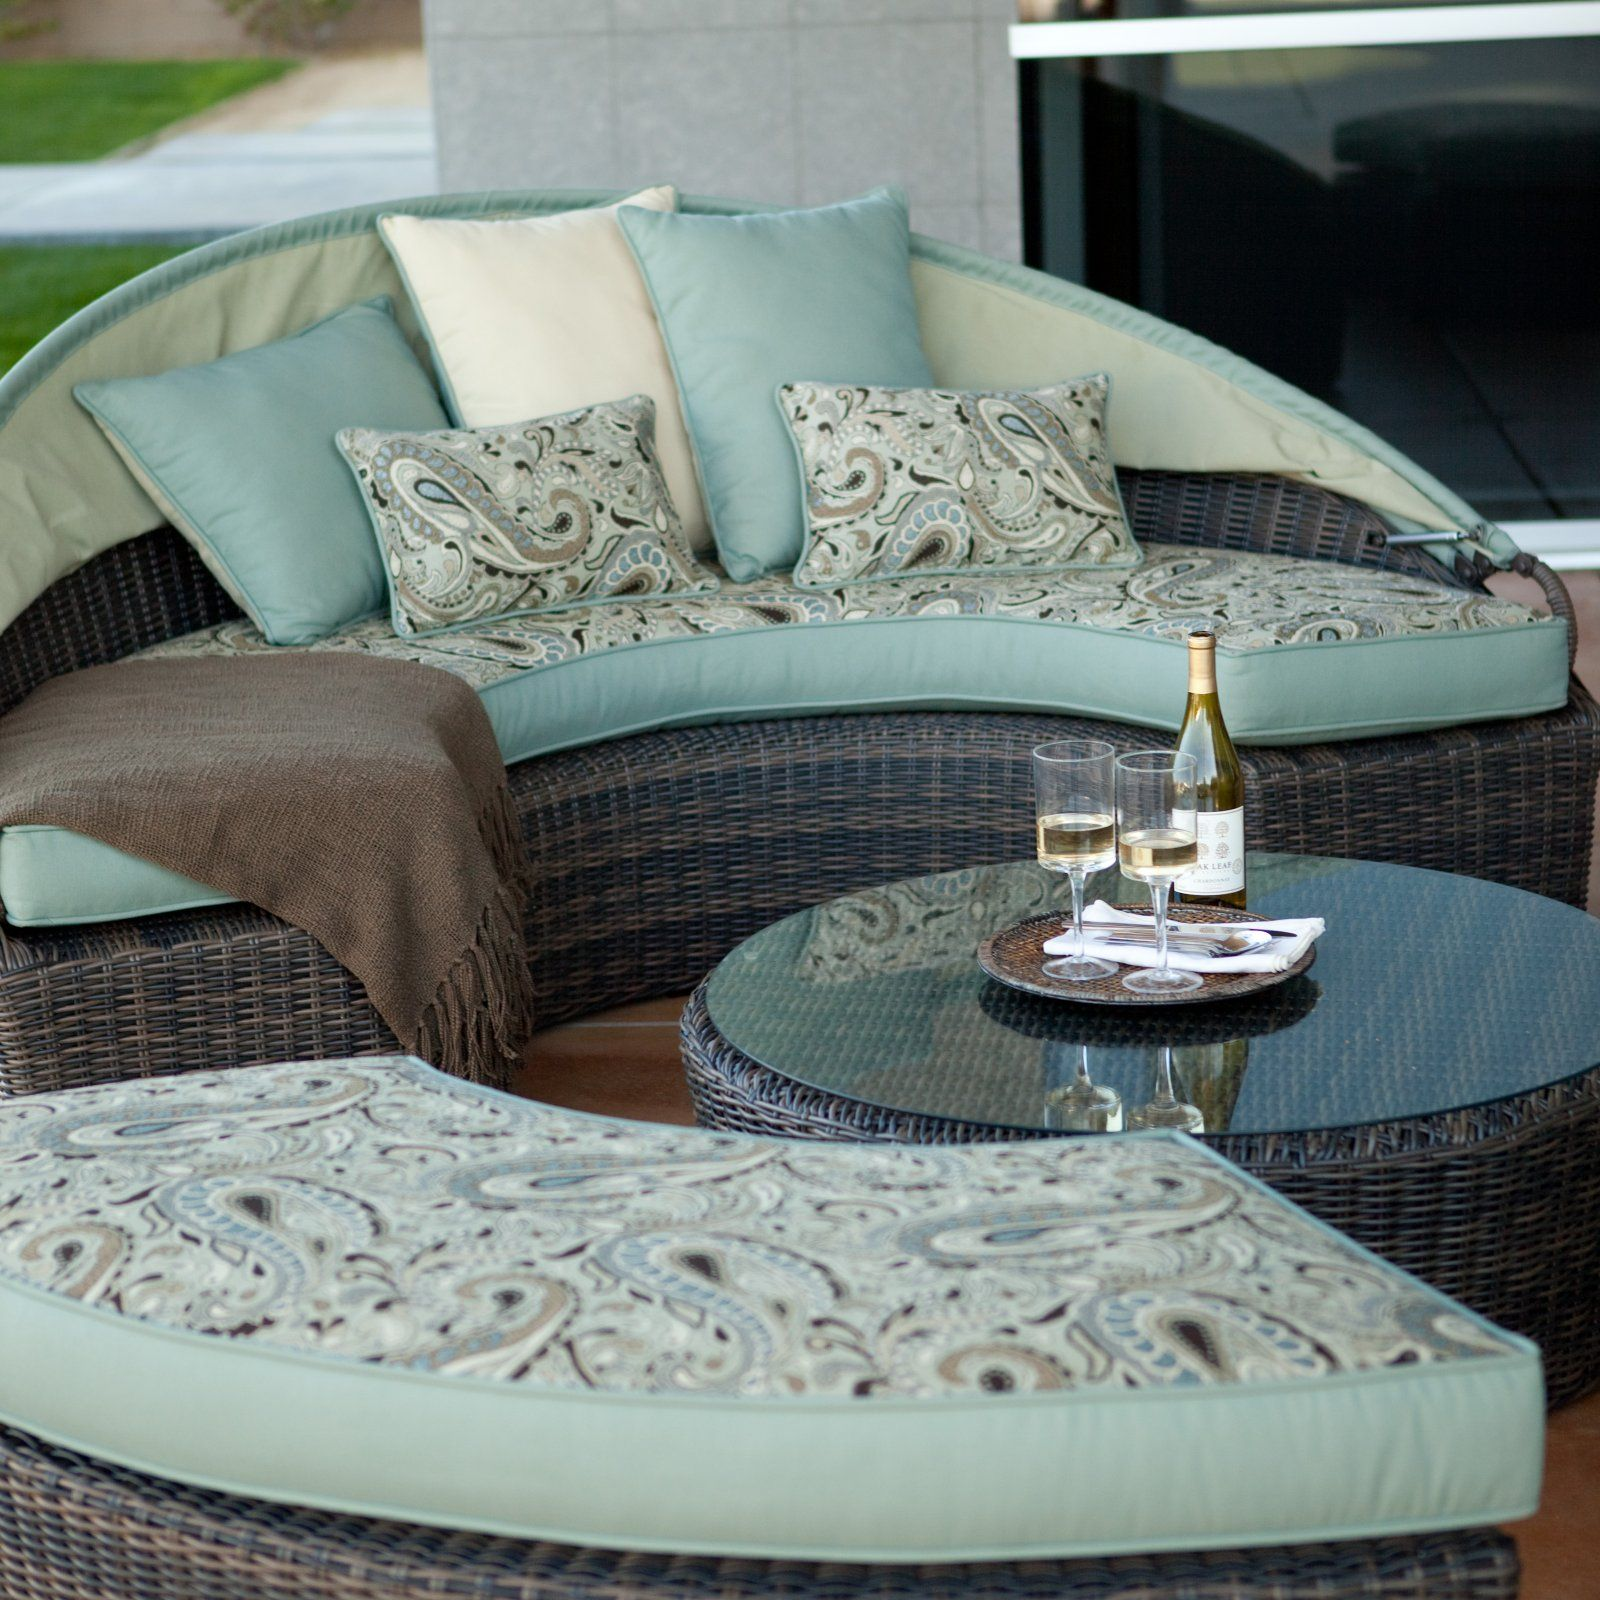 Rendezvous allweather wicker reversible cushion sectional daybed